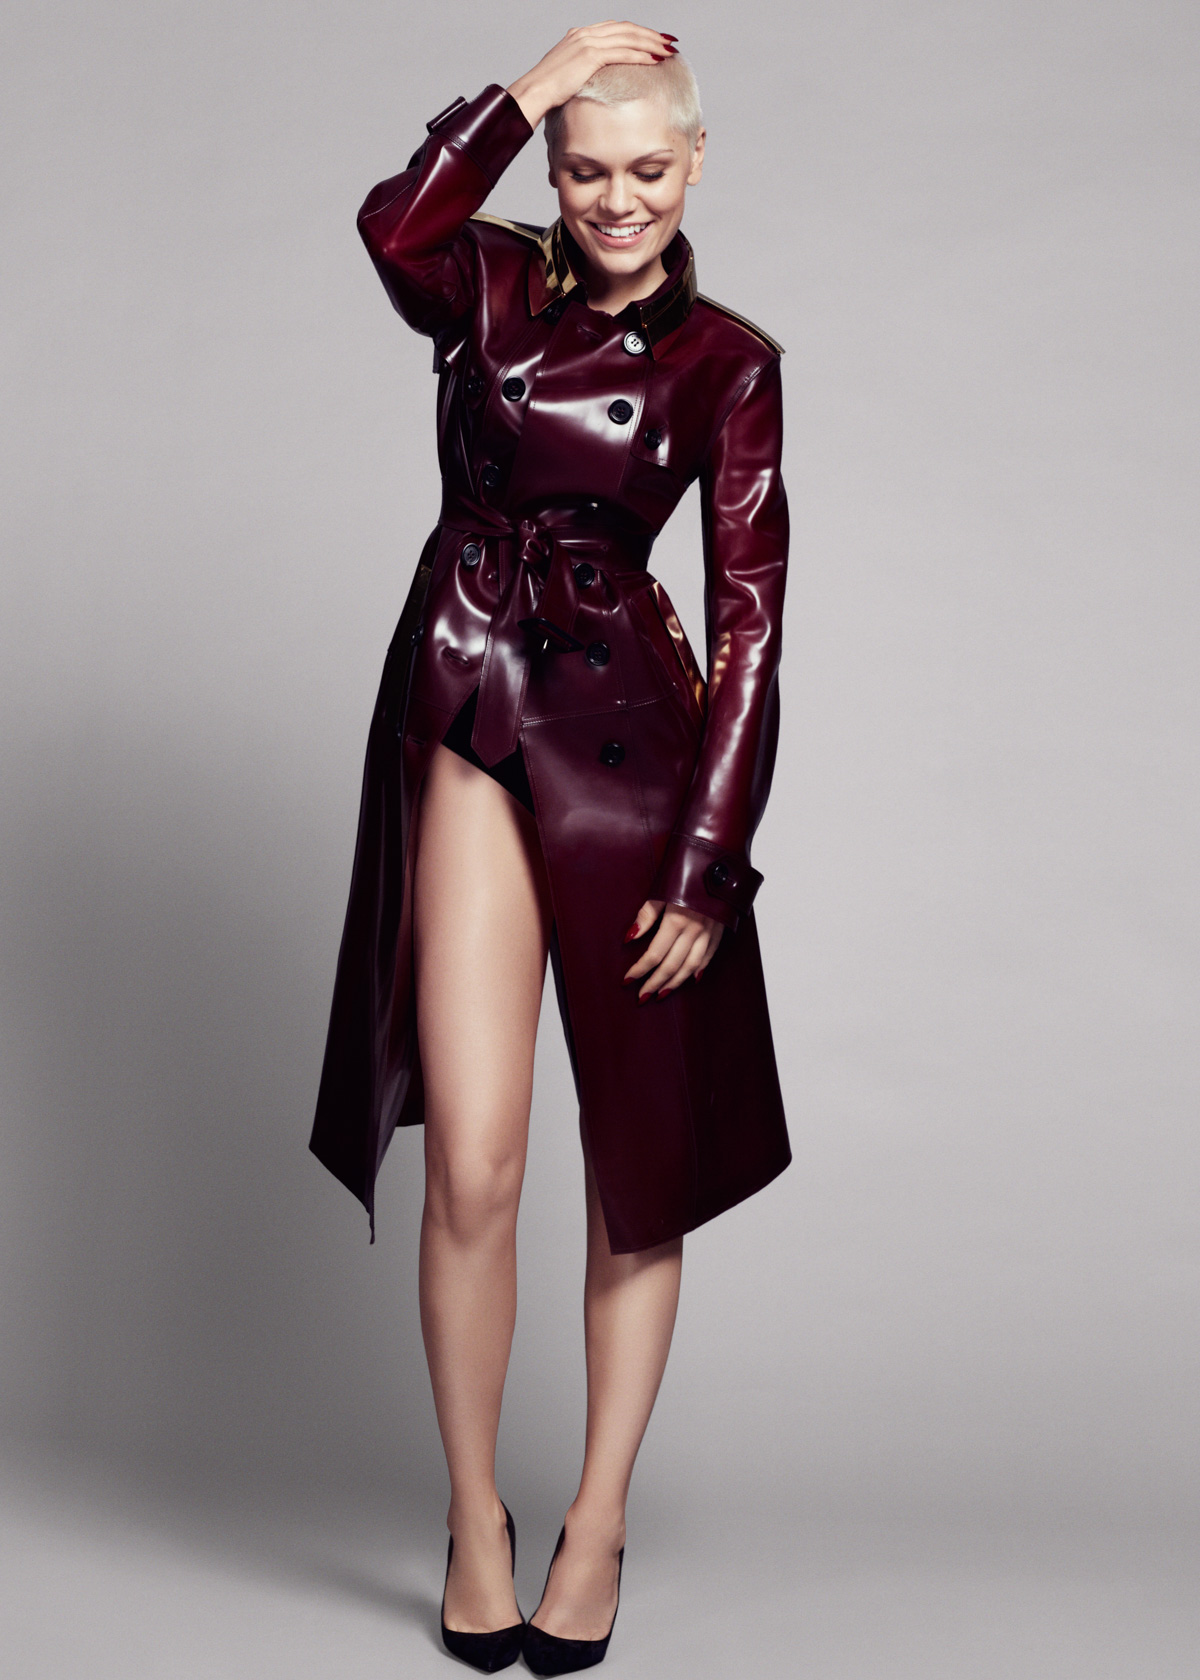 House Of Usher Jessie J by David Roemer 11